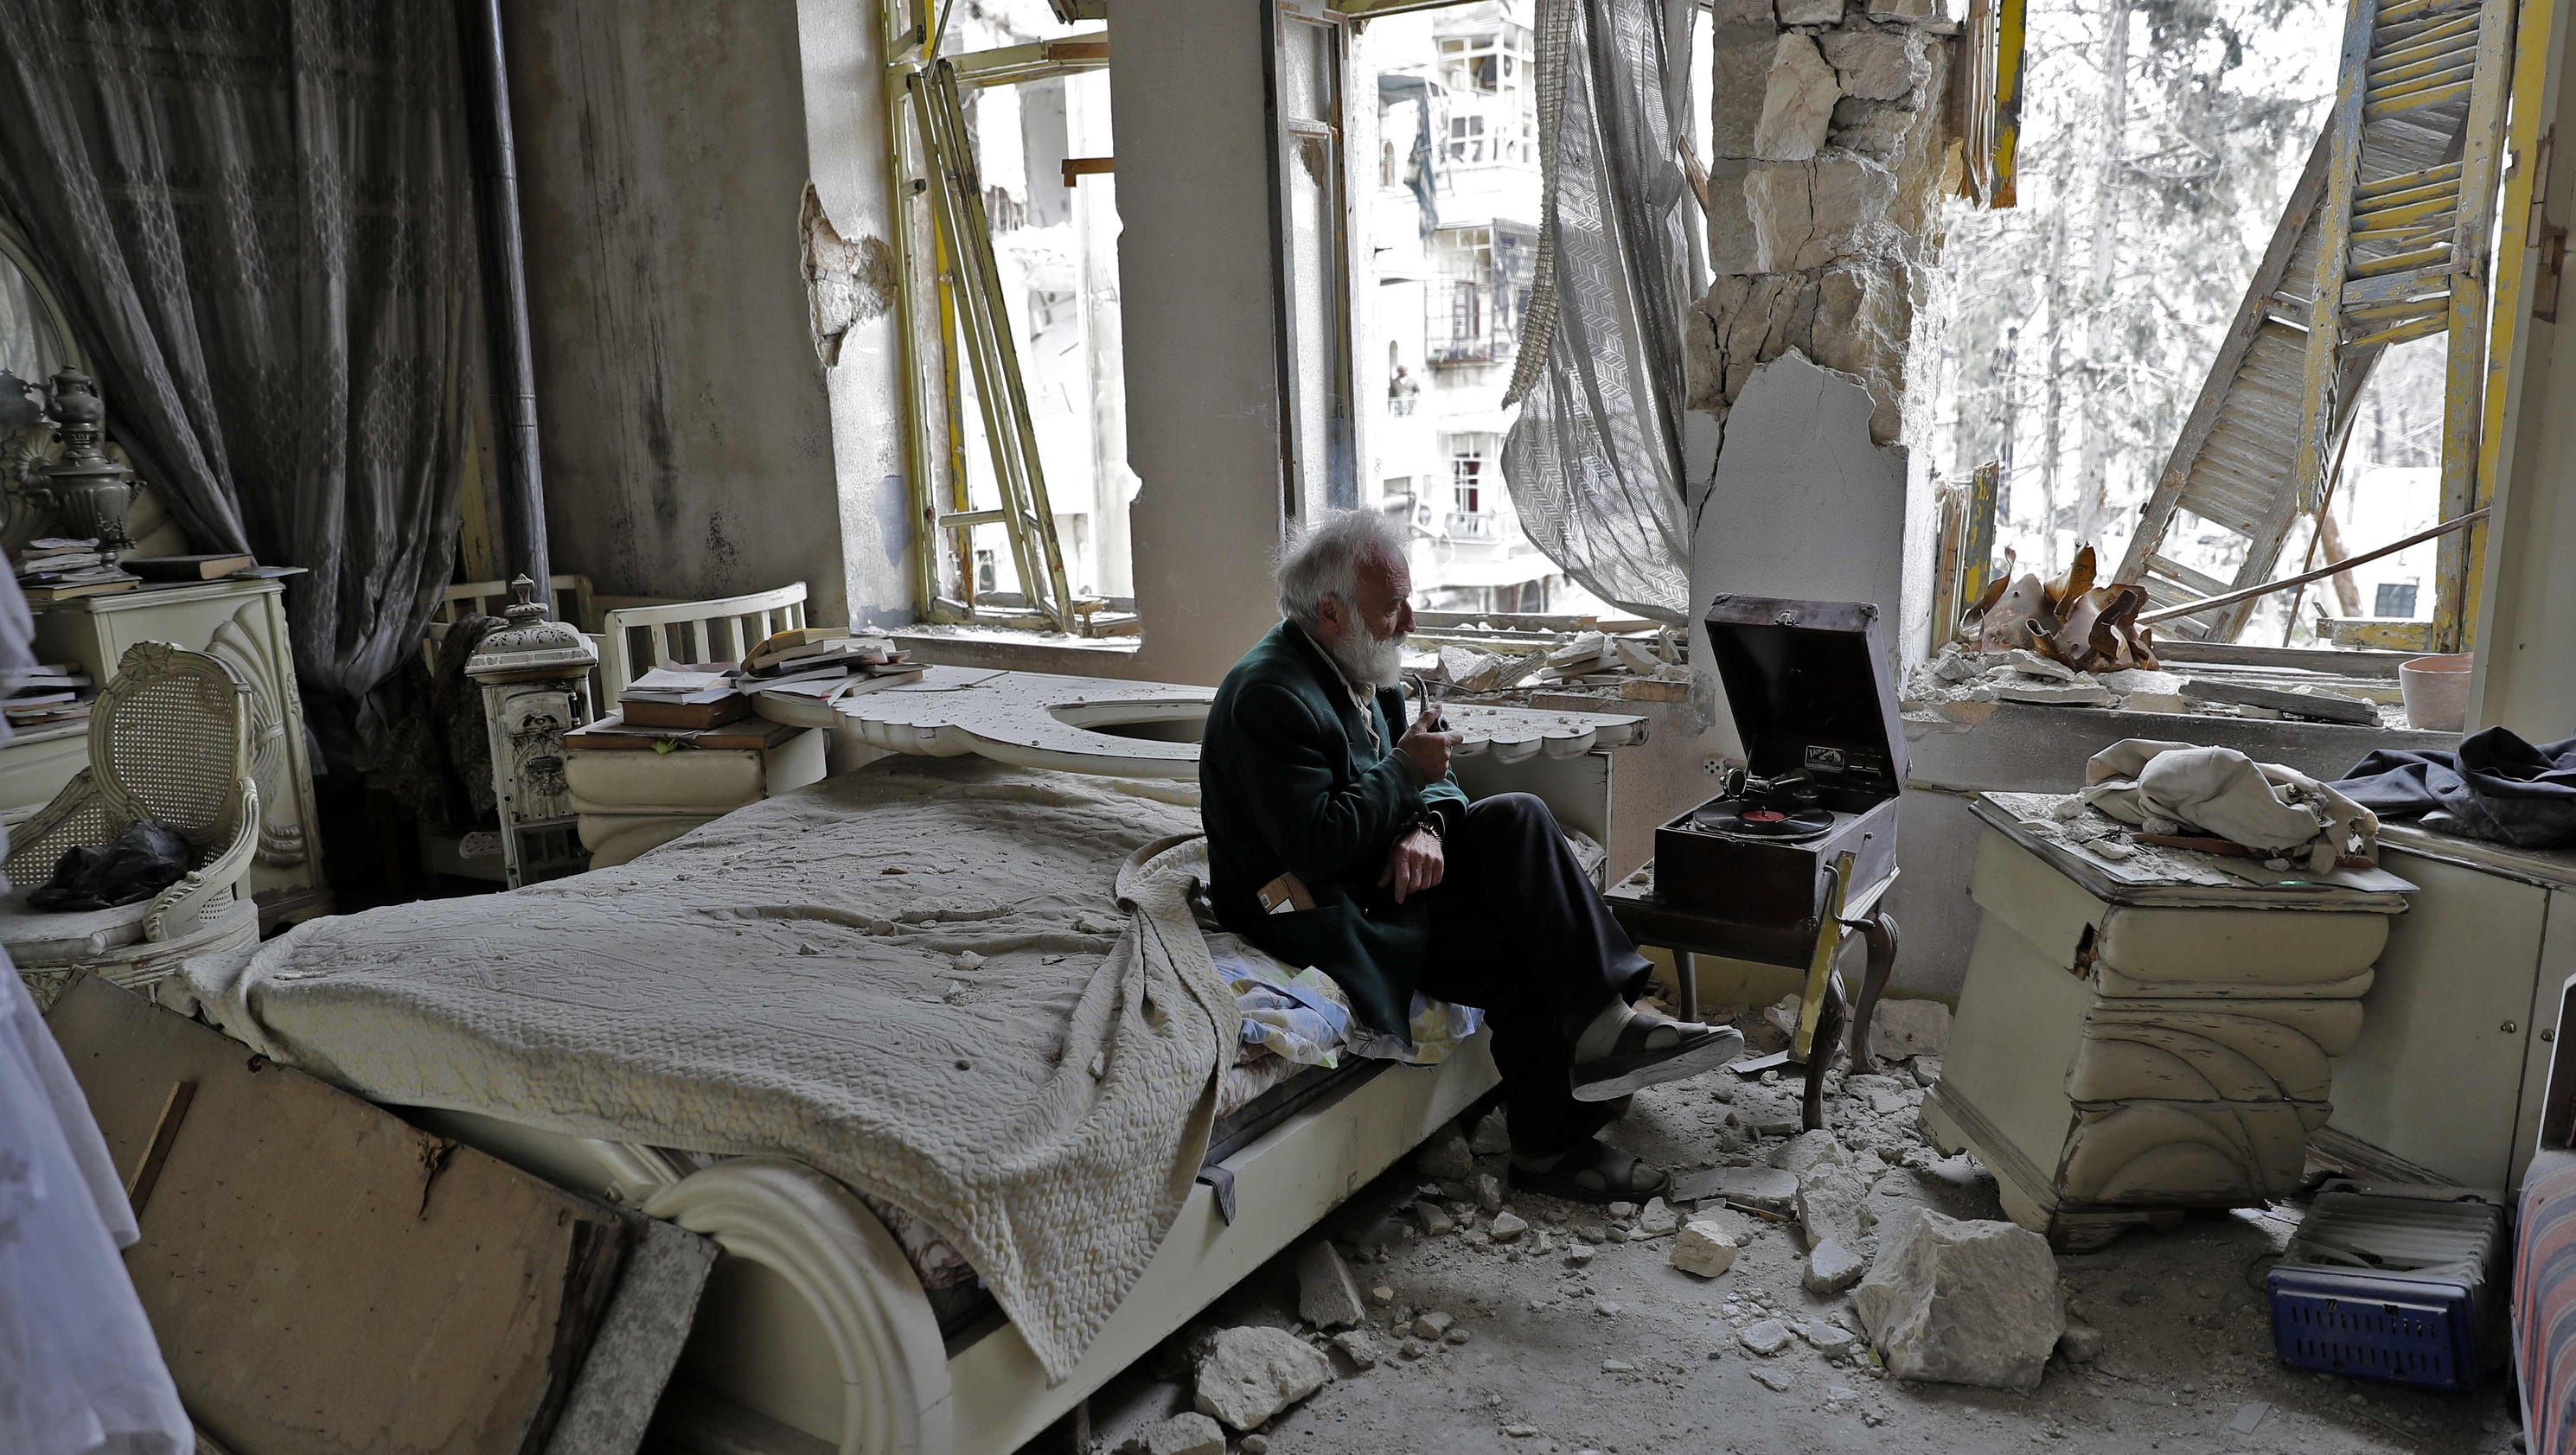 A Man Listening To A Record Player In War Torn Syria And